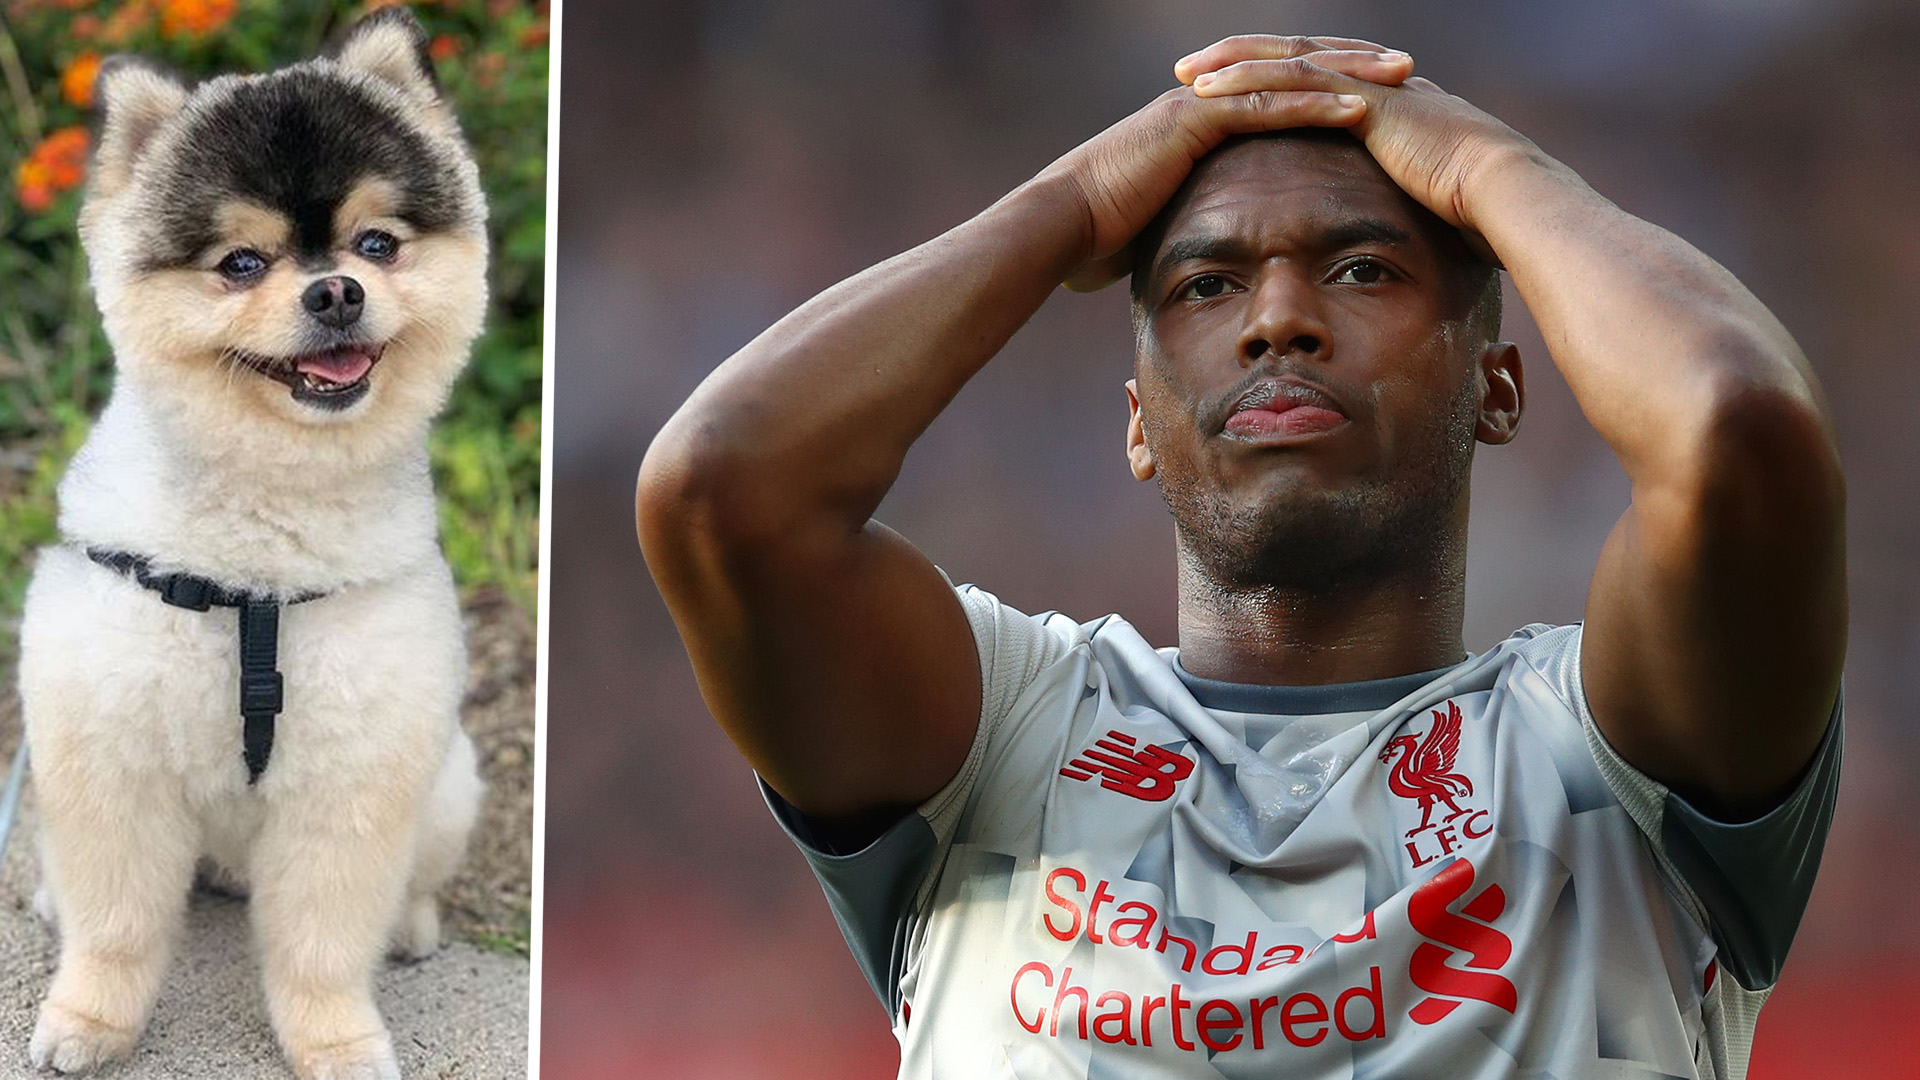 Sturridge offers £30k for return of his dog after its stolen from his Los Angeles house